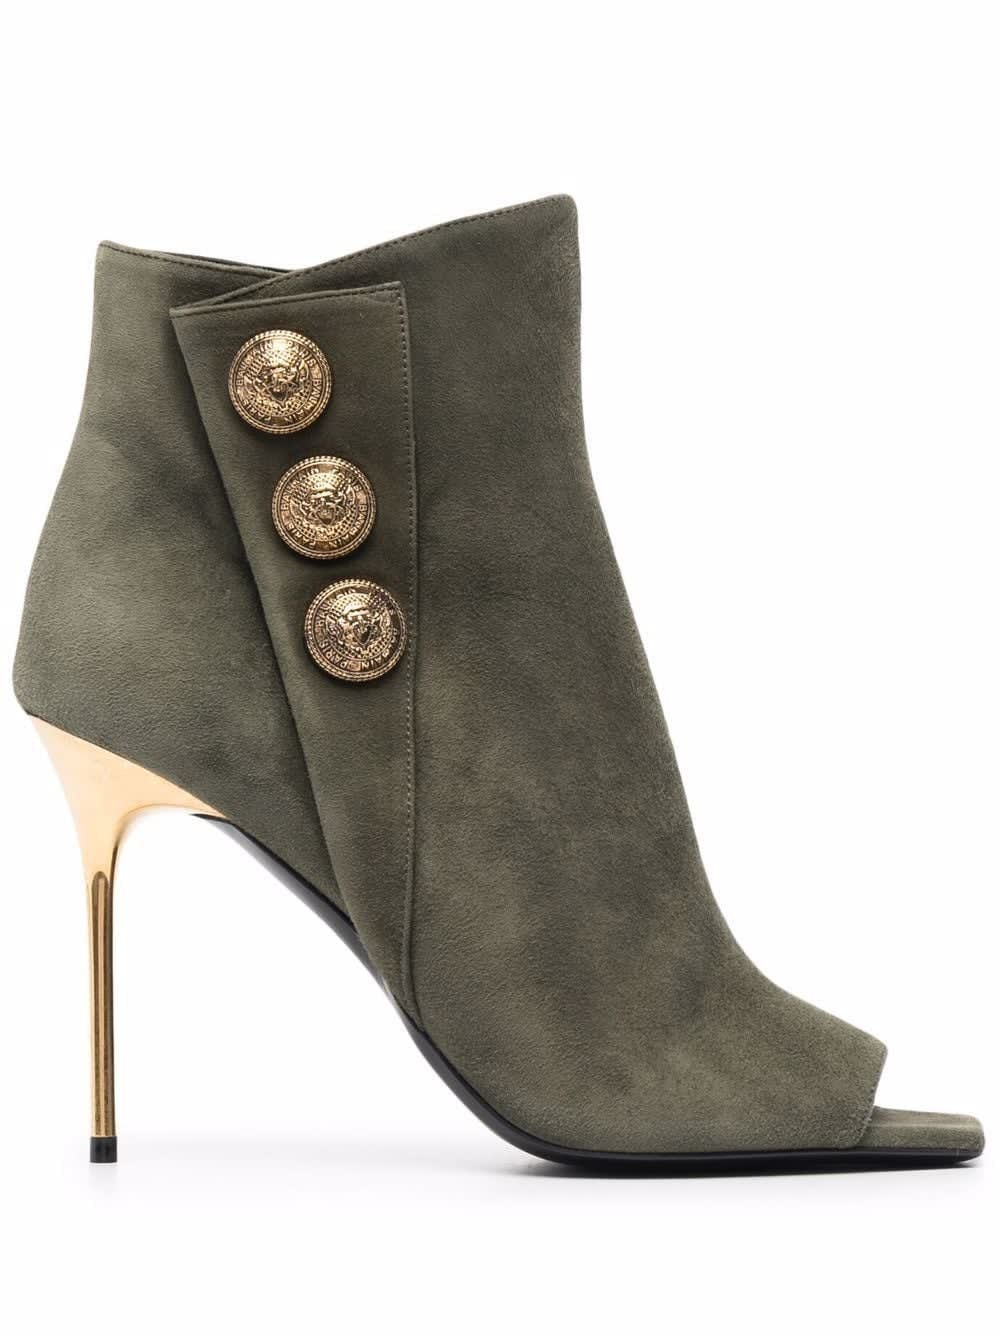 Buy Balmain Military Green Suede Ankle Boot With Golden Embossed Buttons online, shop Balmain shoes with free shipping